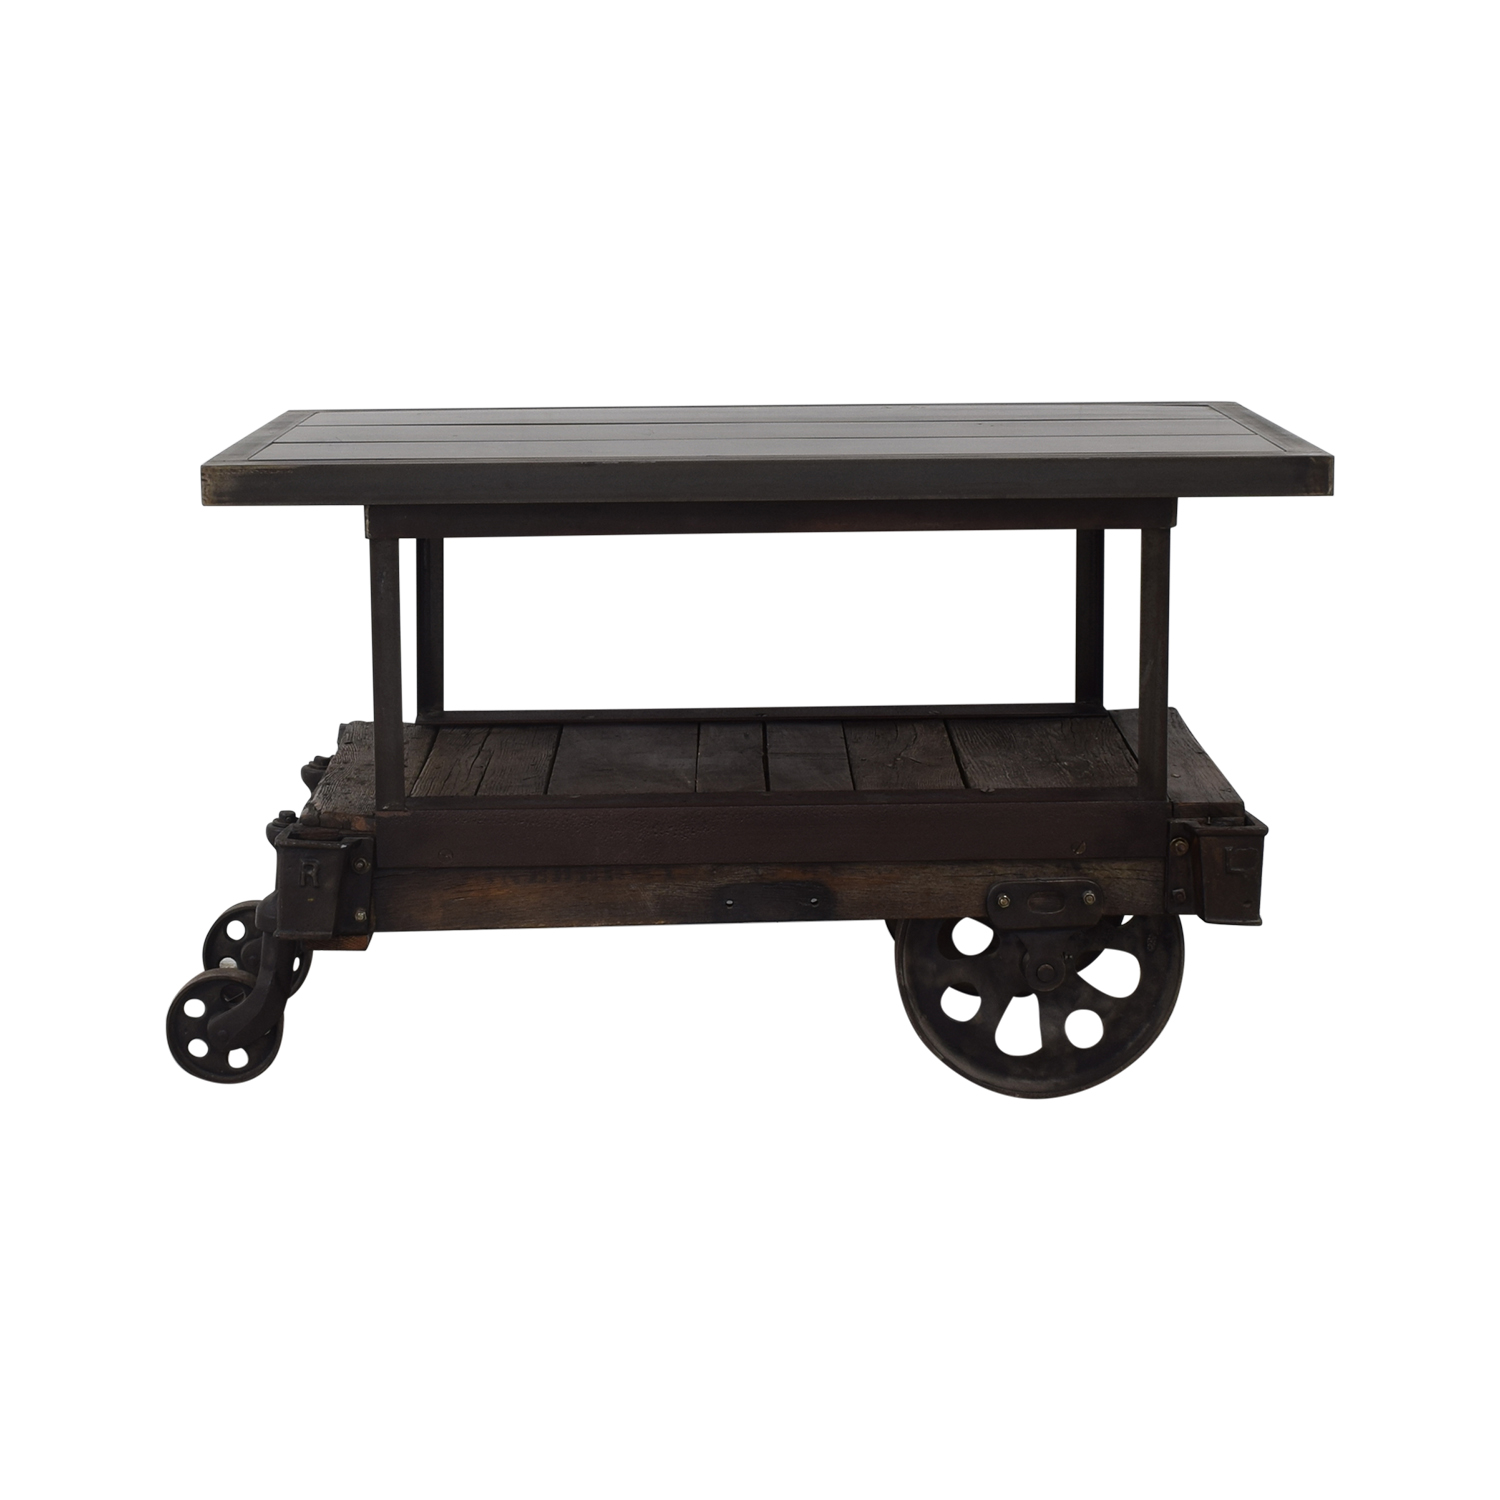 Rustic Wood Table Cart black and brown